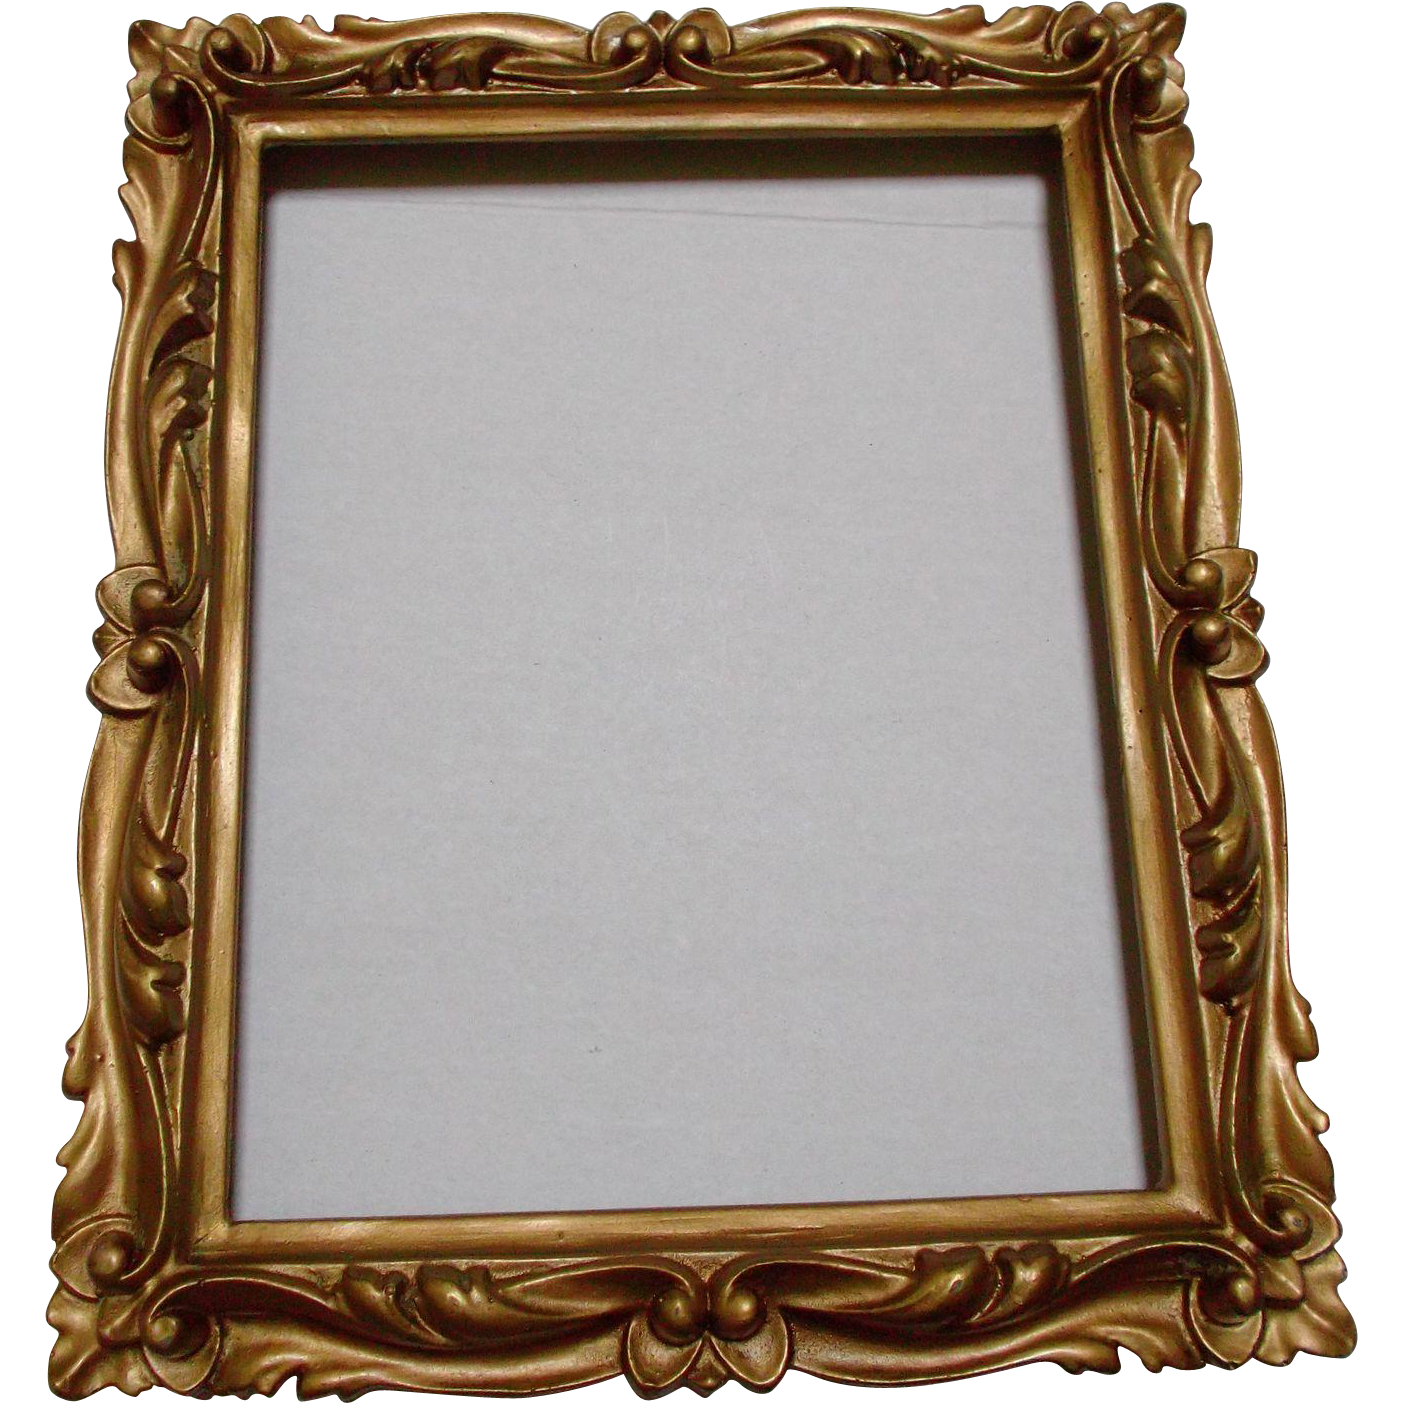 Vintage wood frame png. Carved gold ormolu decorative